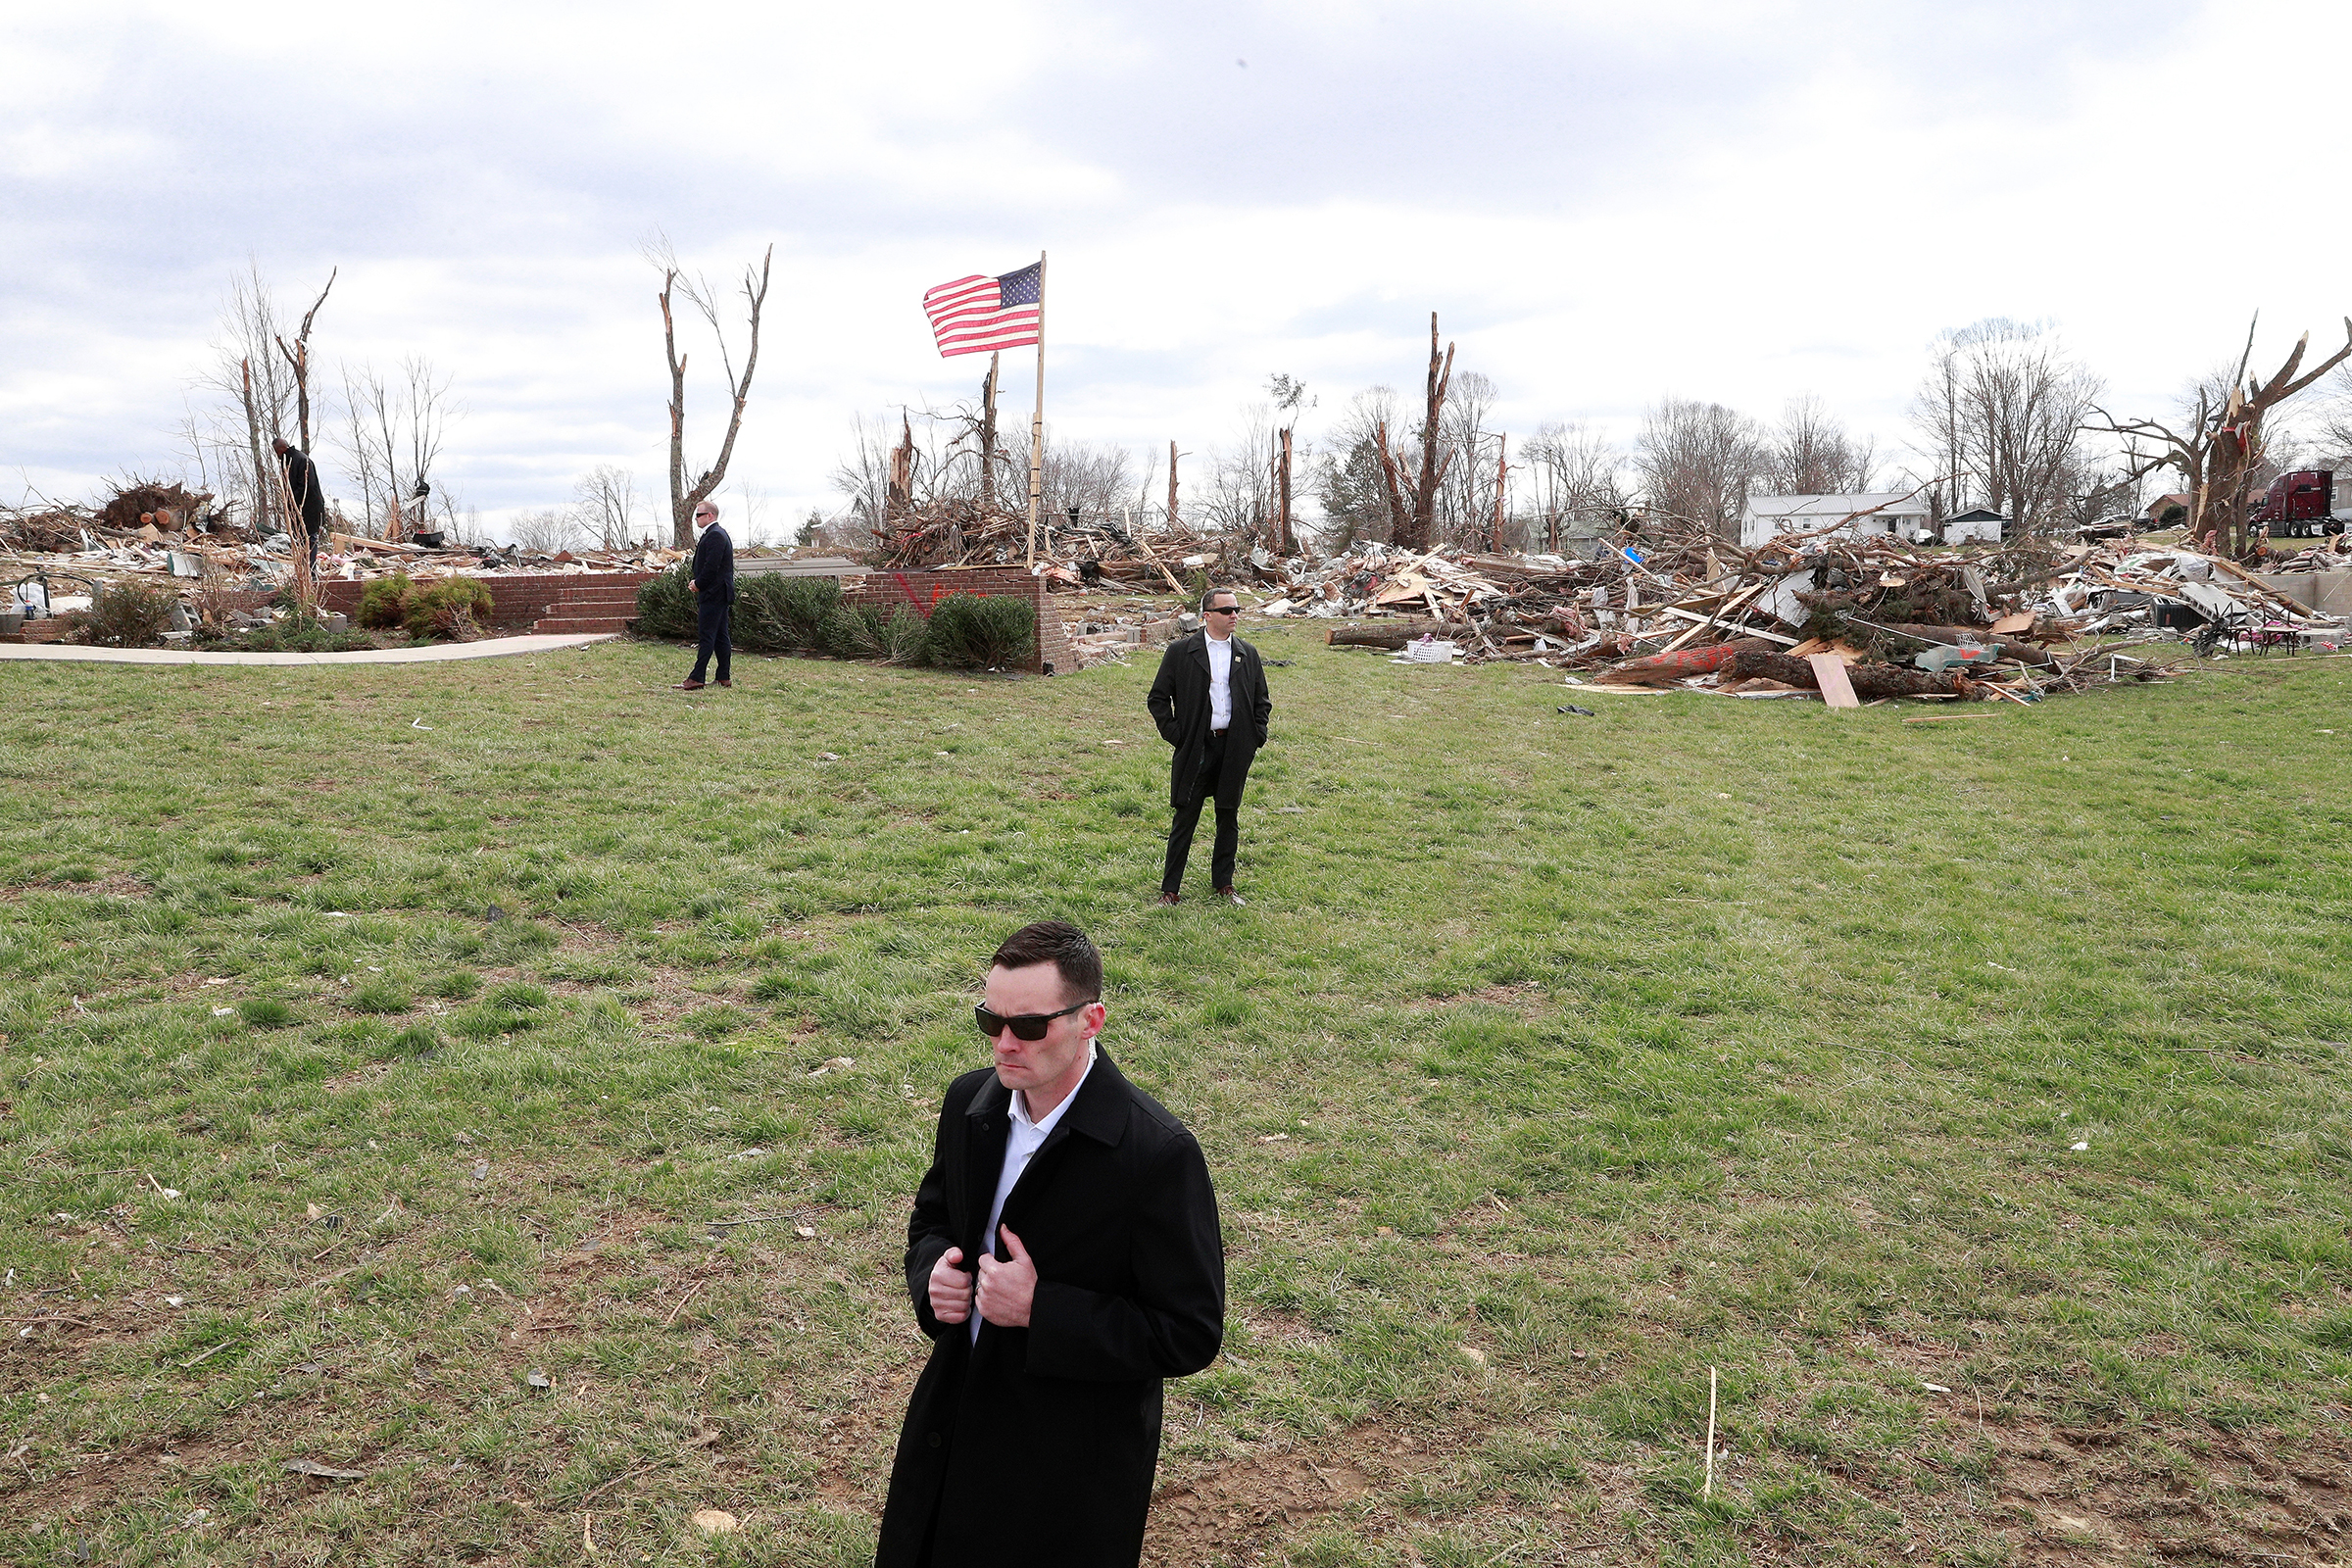 U.S. Secret Service agents stand by as President Trump, not pictured, observes tornado damage in Cookeville, east of Nashville, on March 6, 2020.